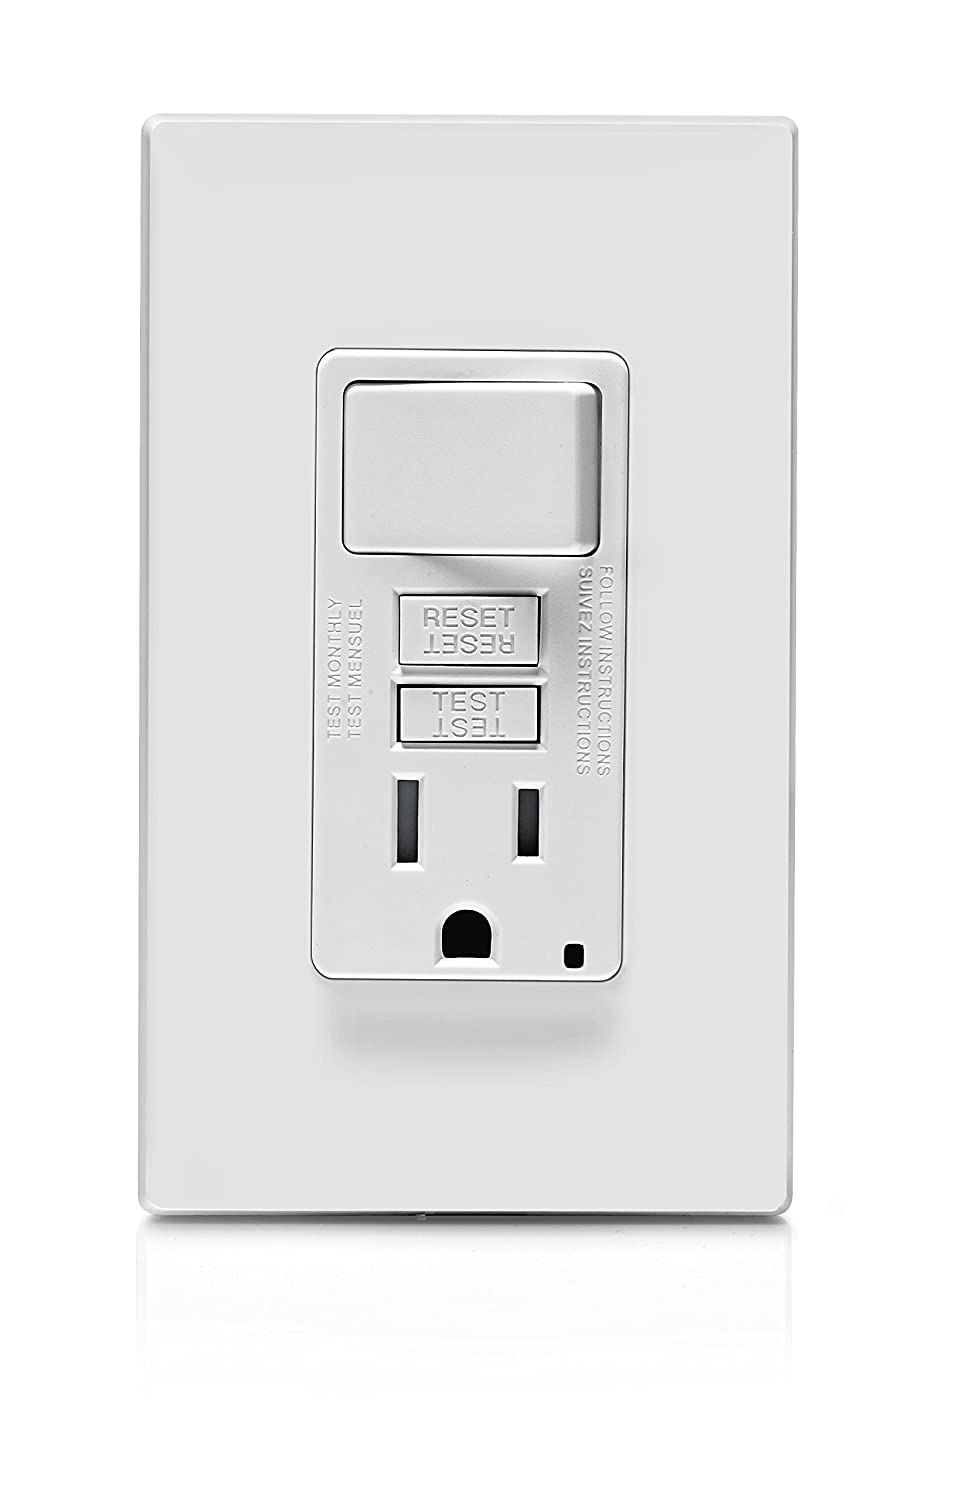 Leviton Gfsw1 W Self Test Smartlockpro Slim Gfci Combination Switch Electrical How Do I Wire A Combo Home Improvement Tamper Resistant Receptacle With Led Indicator 15 Amp White Gidds 2499319